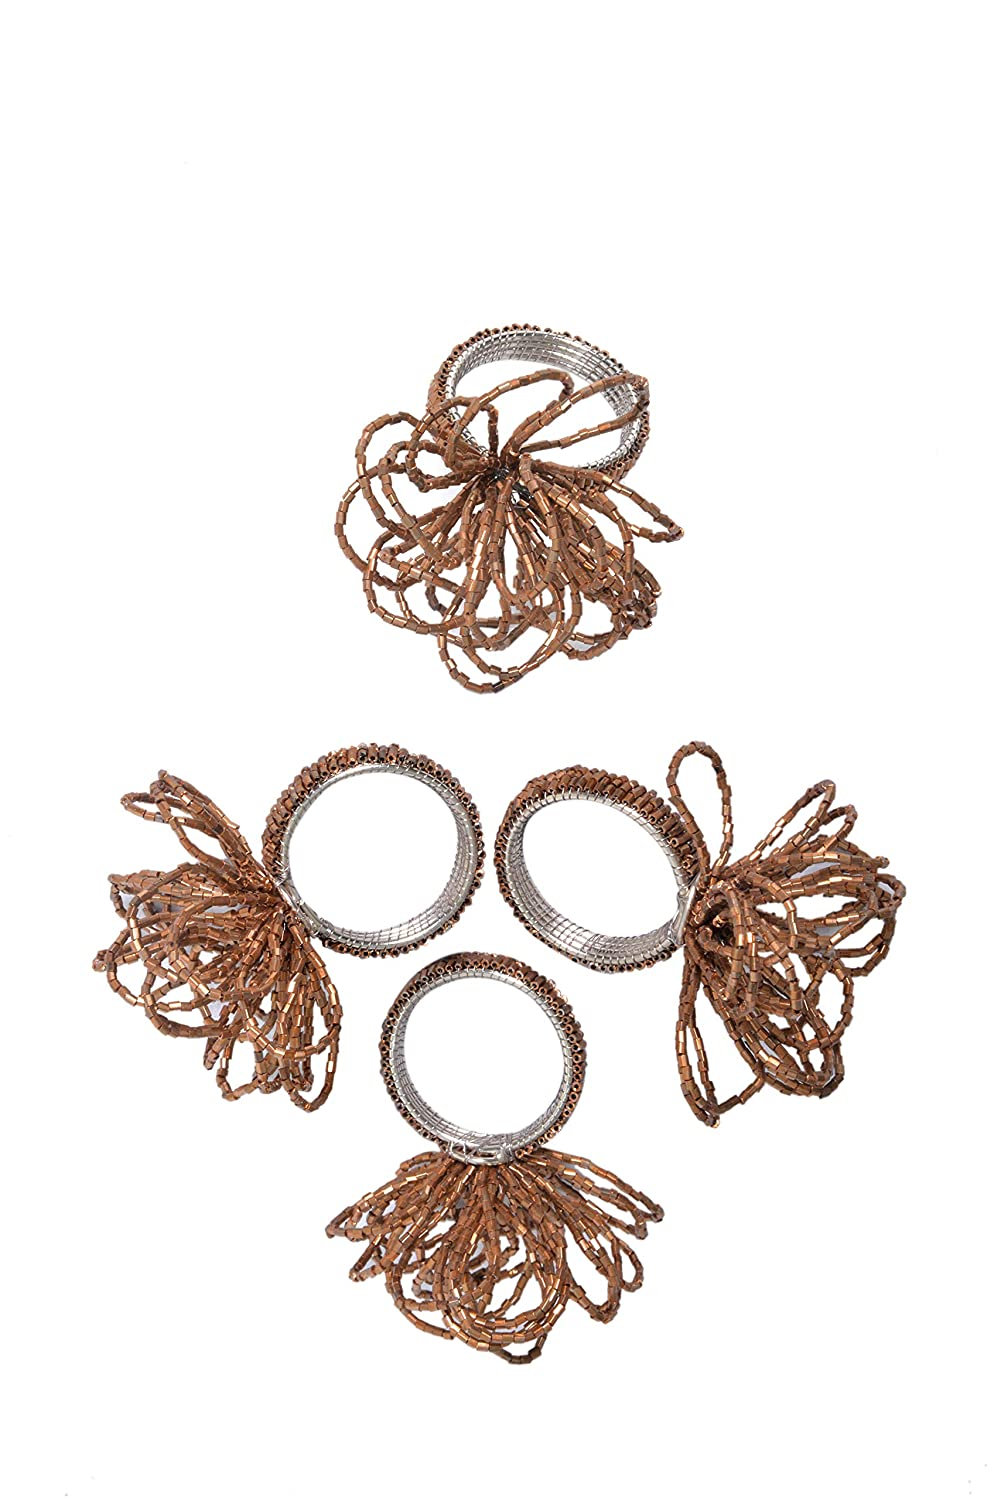 Hand Made by Skilled artisans Alpha Living Home Handicraft Floral Beaded Napkin Rings Set of 4 Brown Beaded Napkin Holders 2 Inch A Joyful complement to Your Dinner Table and Their Accessories